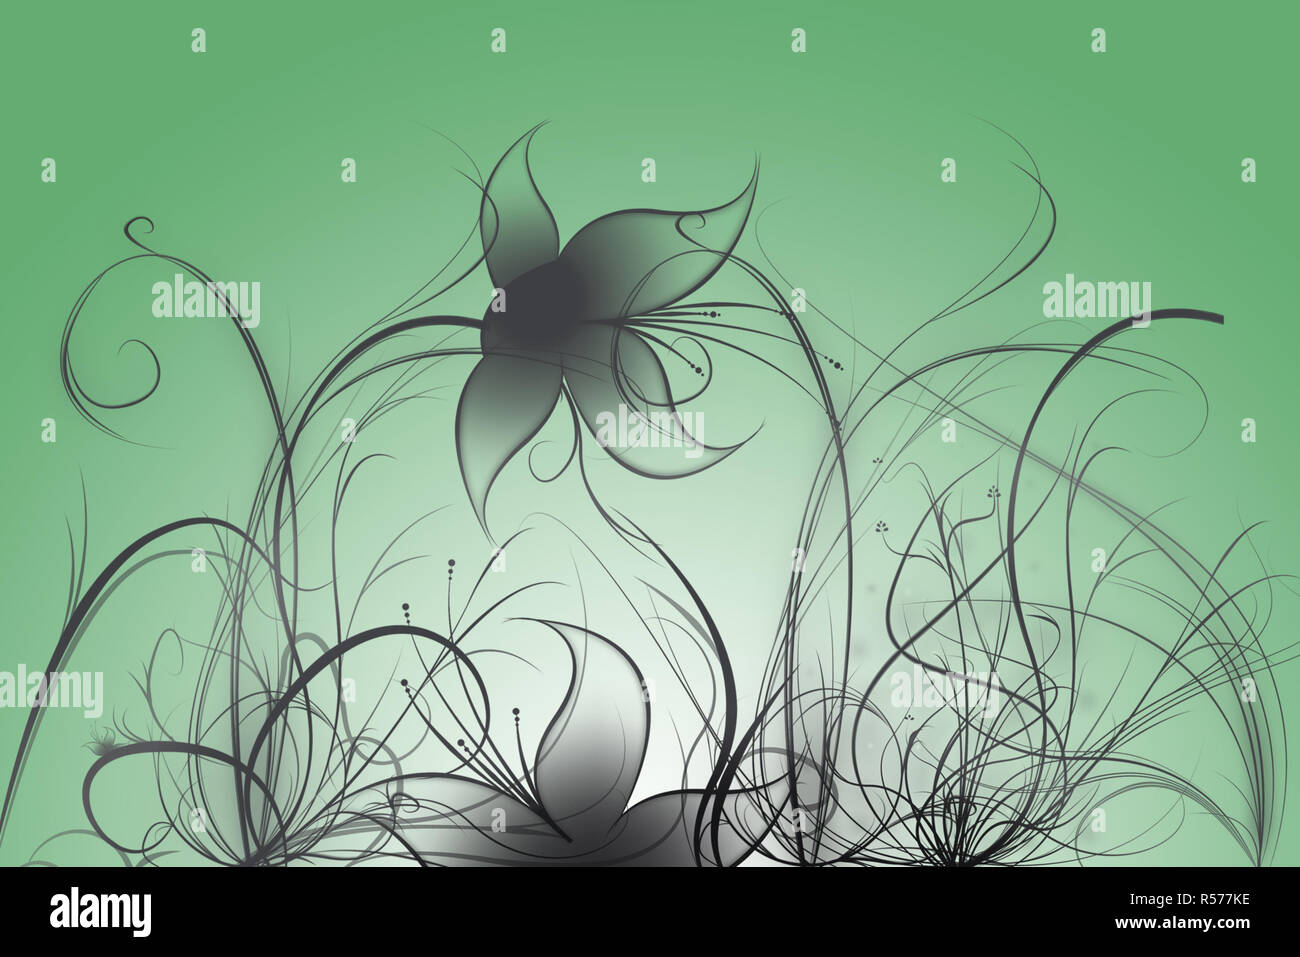 Beautiful illustrated flower background design with gradient - Stock Image